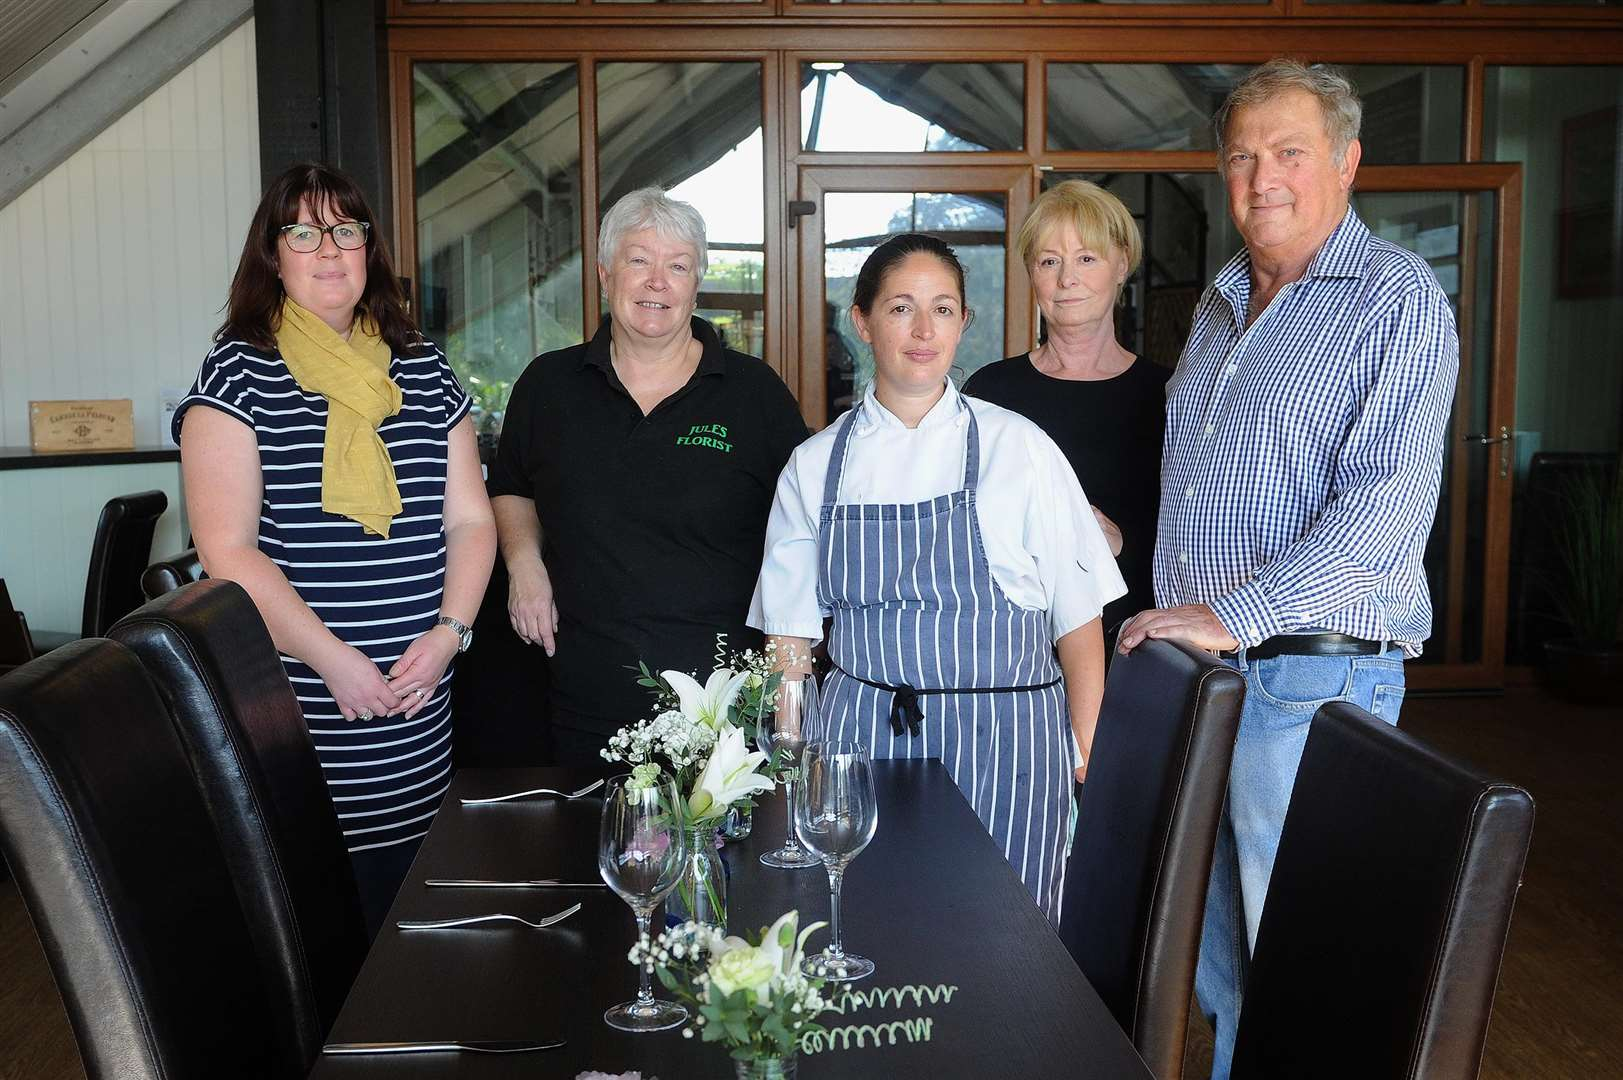 Assington Country Kitchen at The Barn has been extended and is now offering venues for weddings and parties...Pictured: Laura Phillips (Florist), Julie Ivory (Florist), Annie Reidy (Head Chef and Co-Owner), Ellen Gordon (Waitress) and Malcolm Long (Co-Owner)....PICTURE: Mecha Morton... .. (4821420)